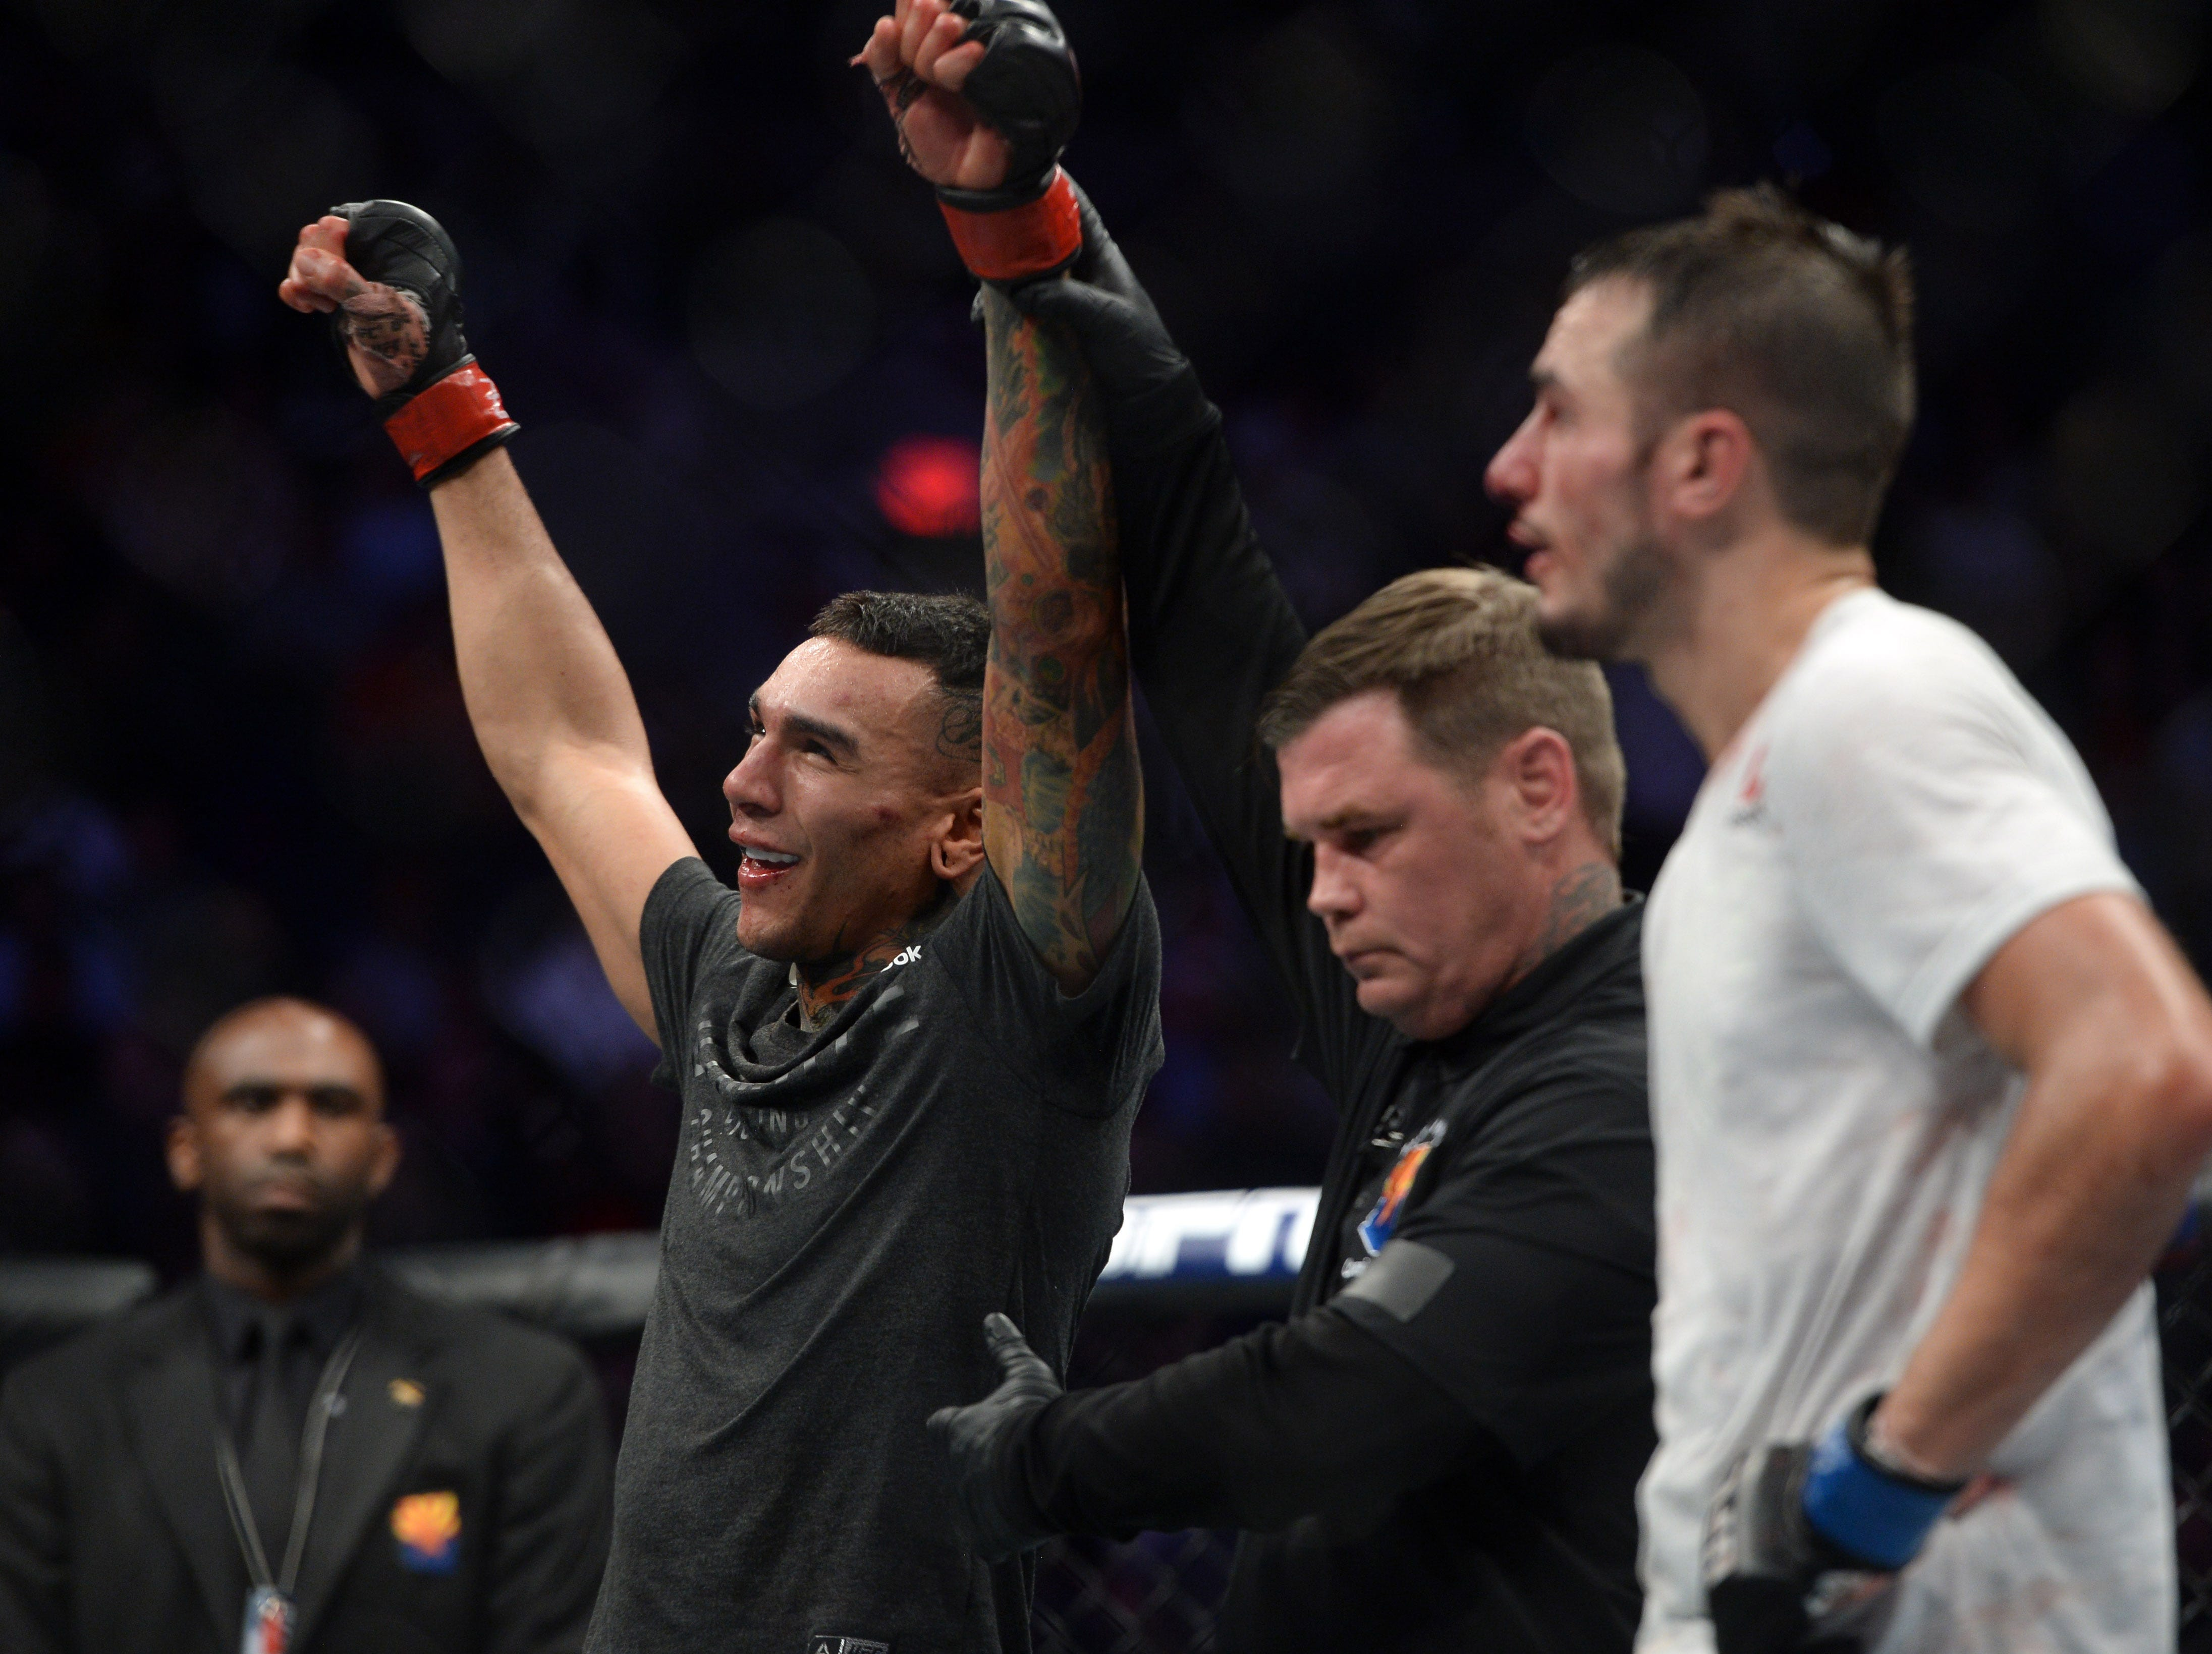 Feb 17, 2019; Phoenix, AZ, USA; Andre Fili (red) and Myles Jury (blue) react after their featherweight bout during UFC Fight Night at Talking Stick Resort Arena. Fili won via unanimous decision. Mandatory Credit: Joe Camporeale-USA TODAY Sports